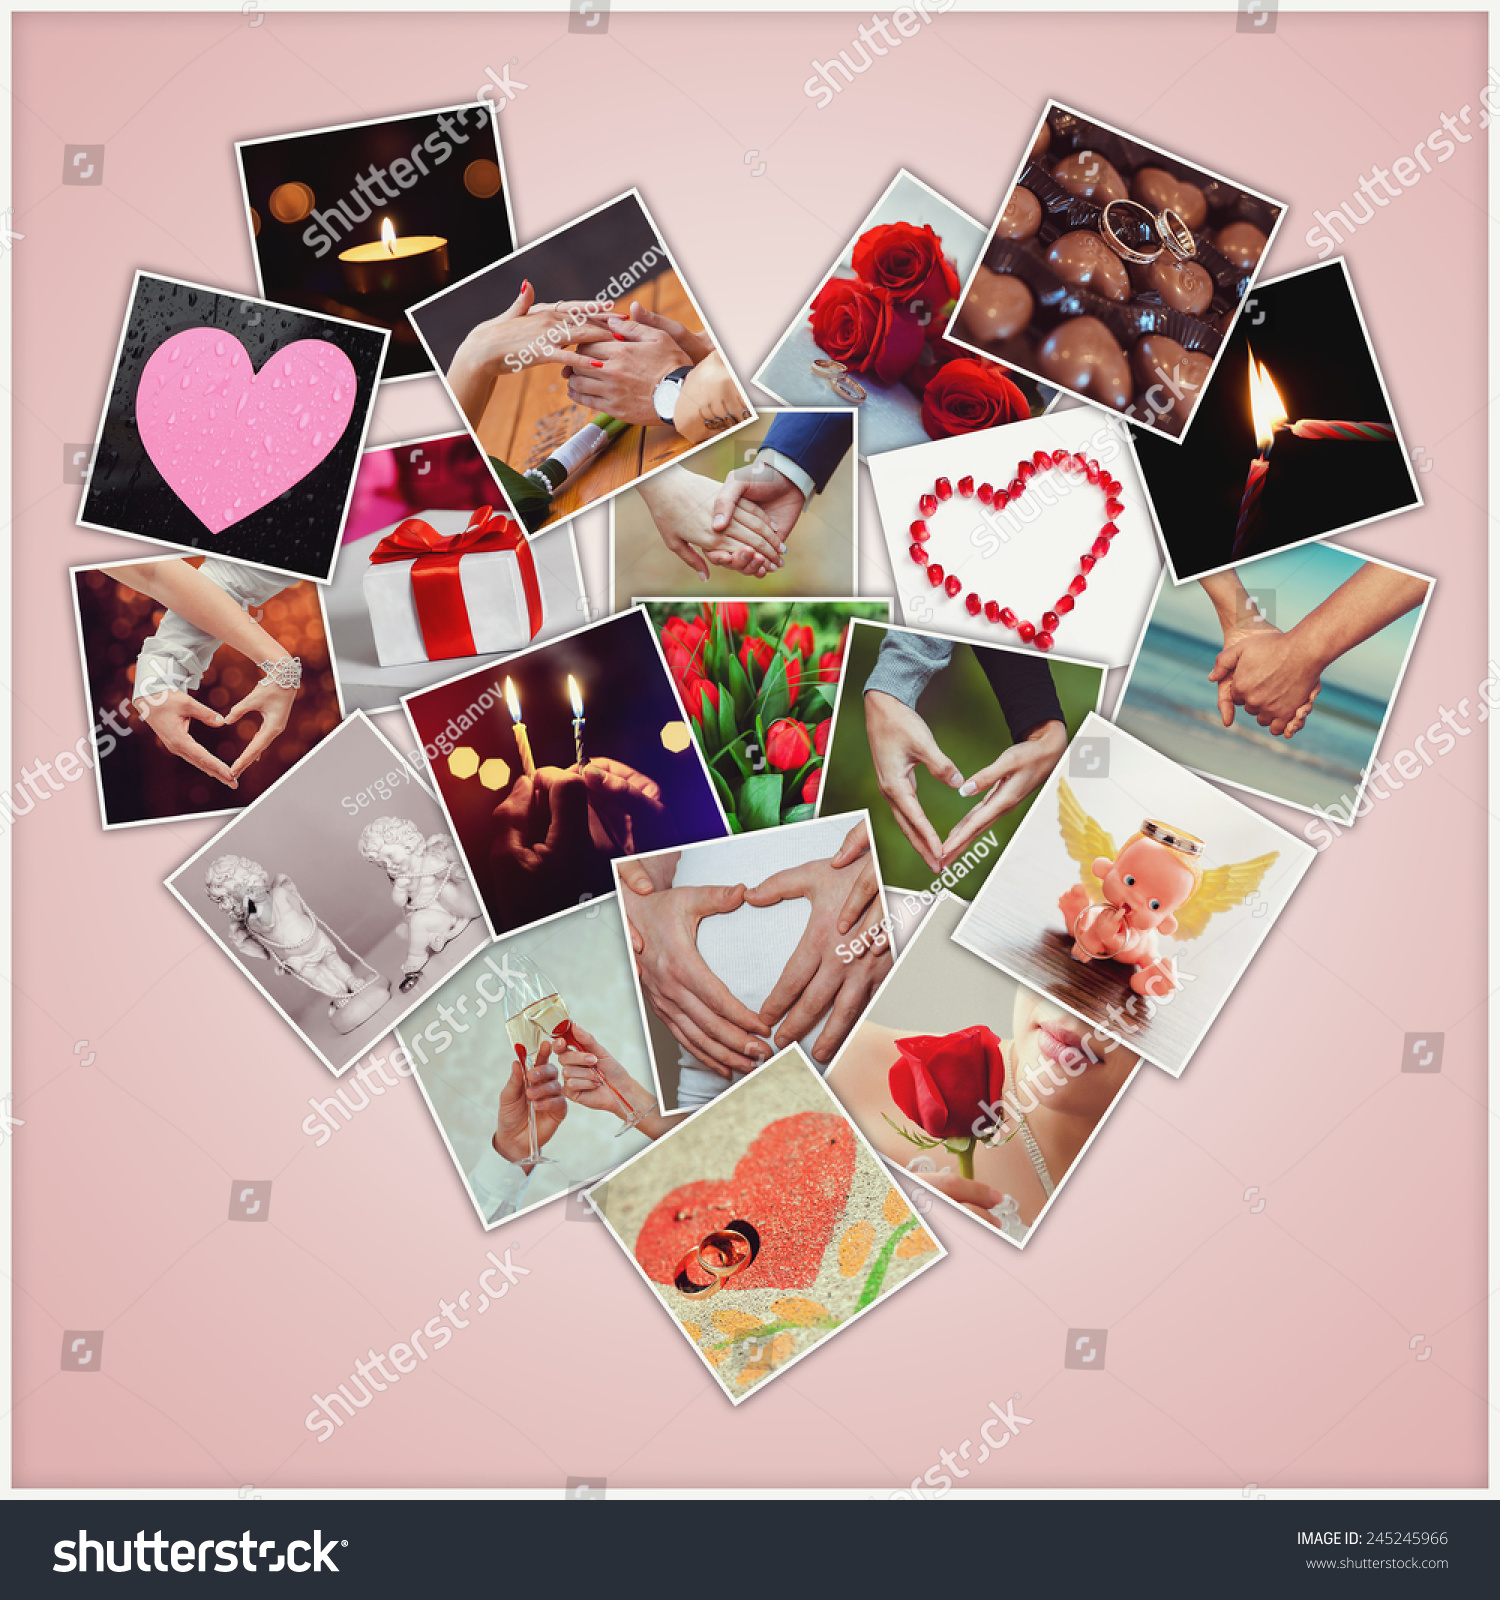 Valentine Collage Of Different Snapshots, Forming A Heart. Love Concept